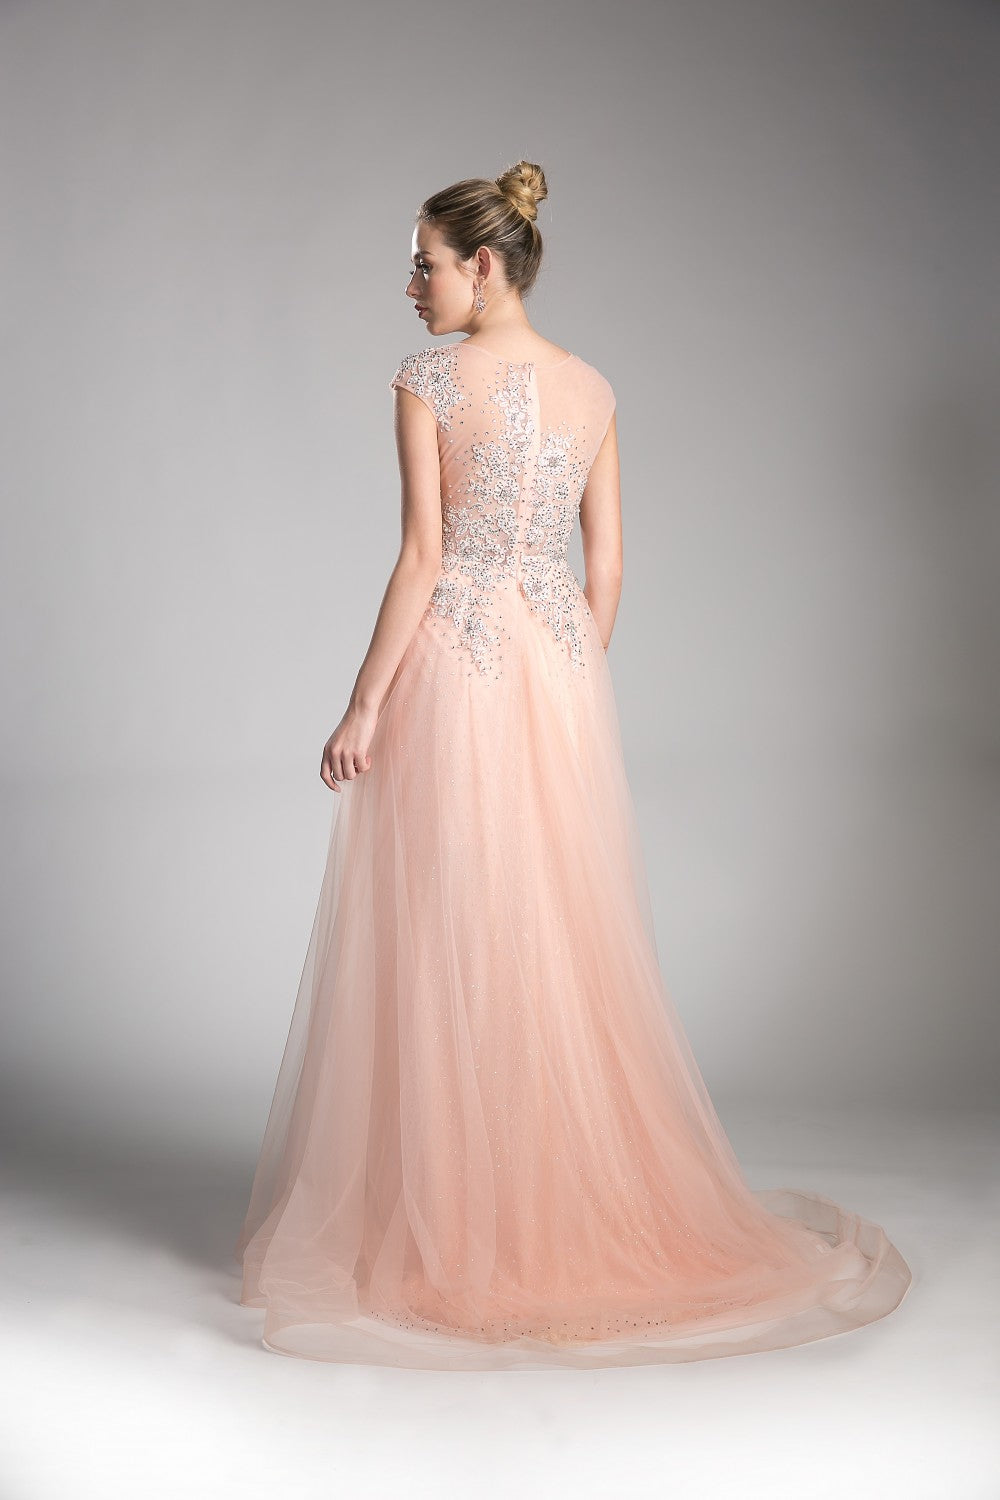 A-Line Tulle Dress With Beaded Cap Sleeve Bodice And Illusion Back